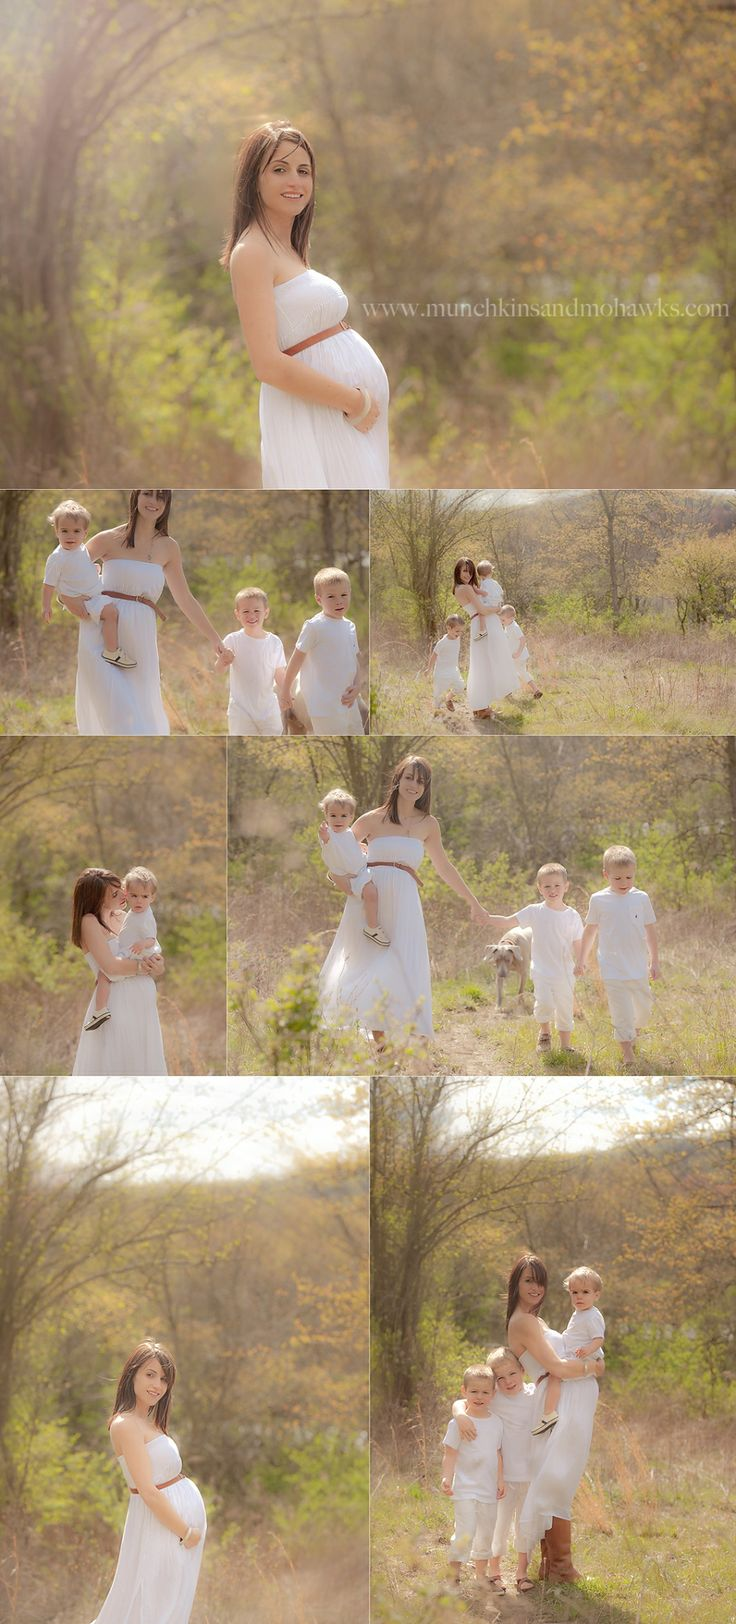 Family maternity - by the fab Munchkins and Mohawks Photography | Portraits by Tiffany Amber